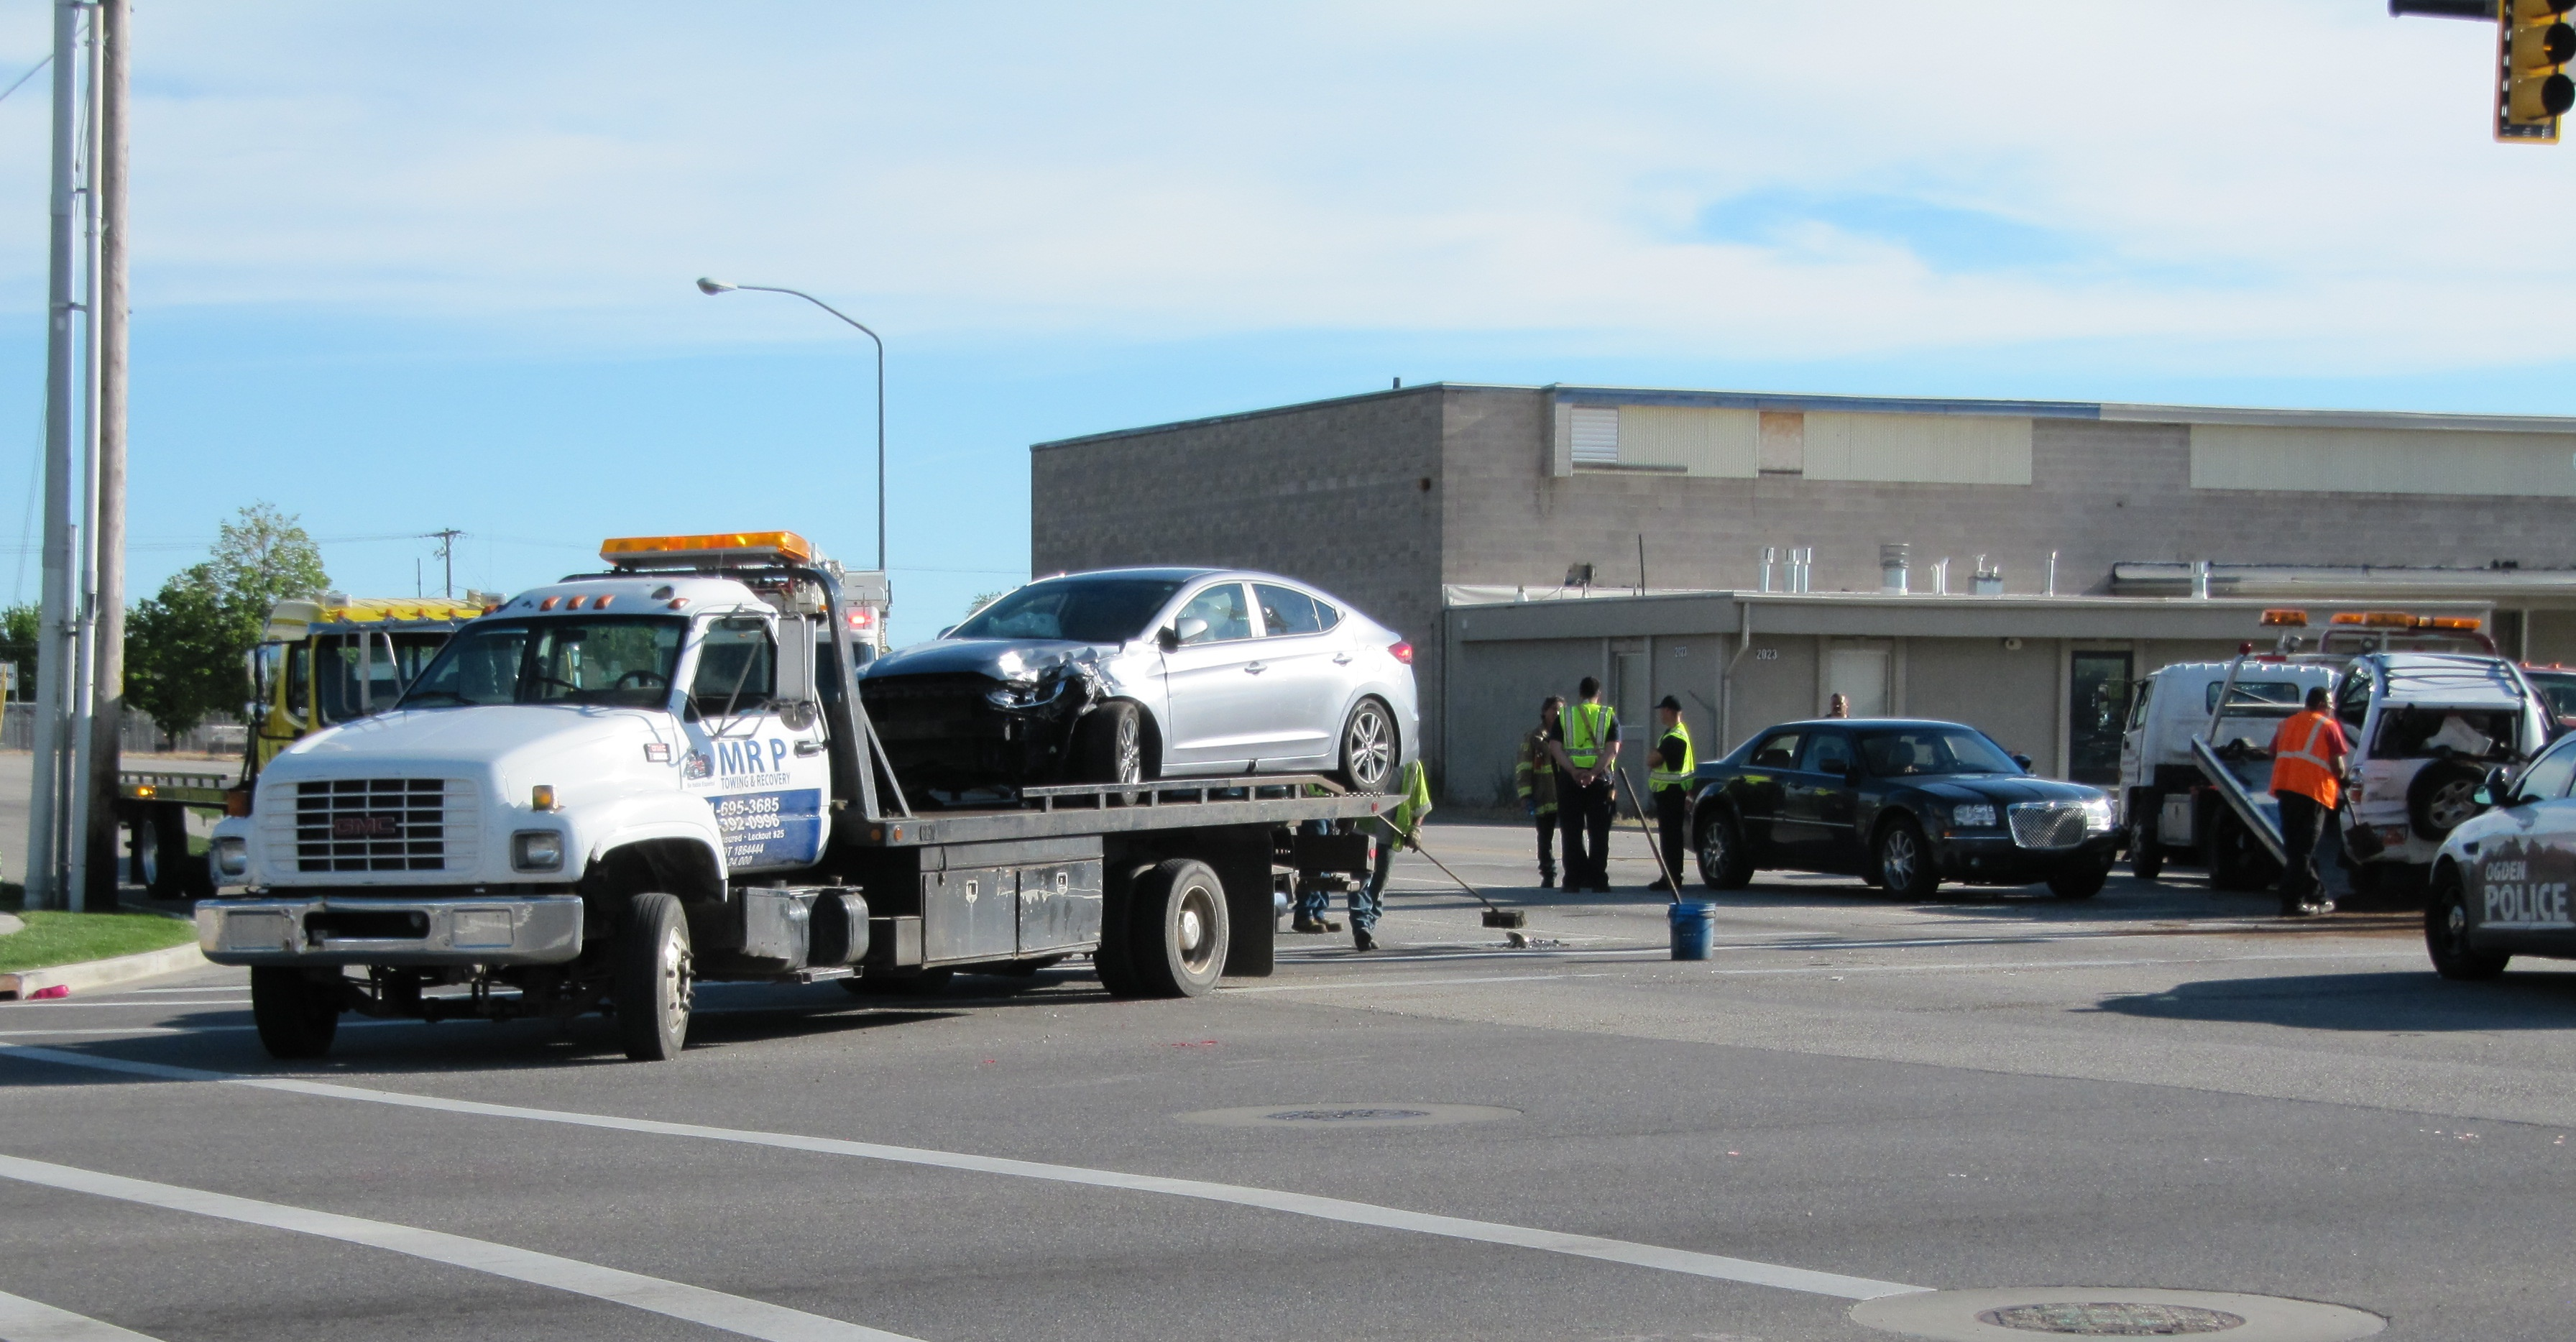 Critical injuries reported in 5-vehicle accident in Ogden